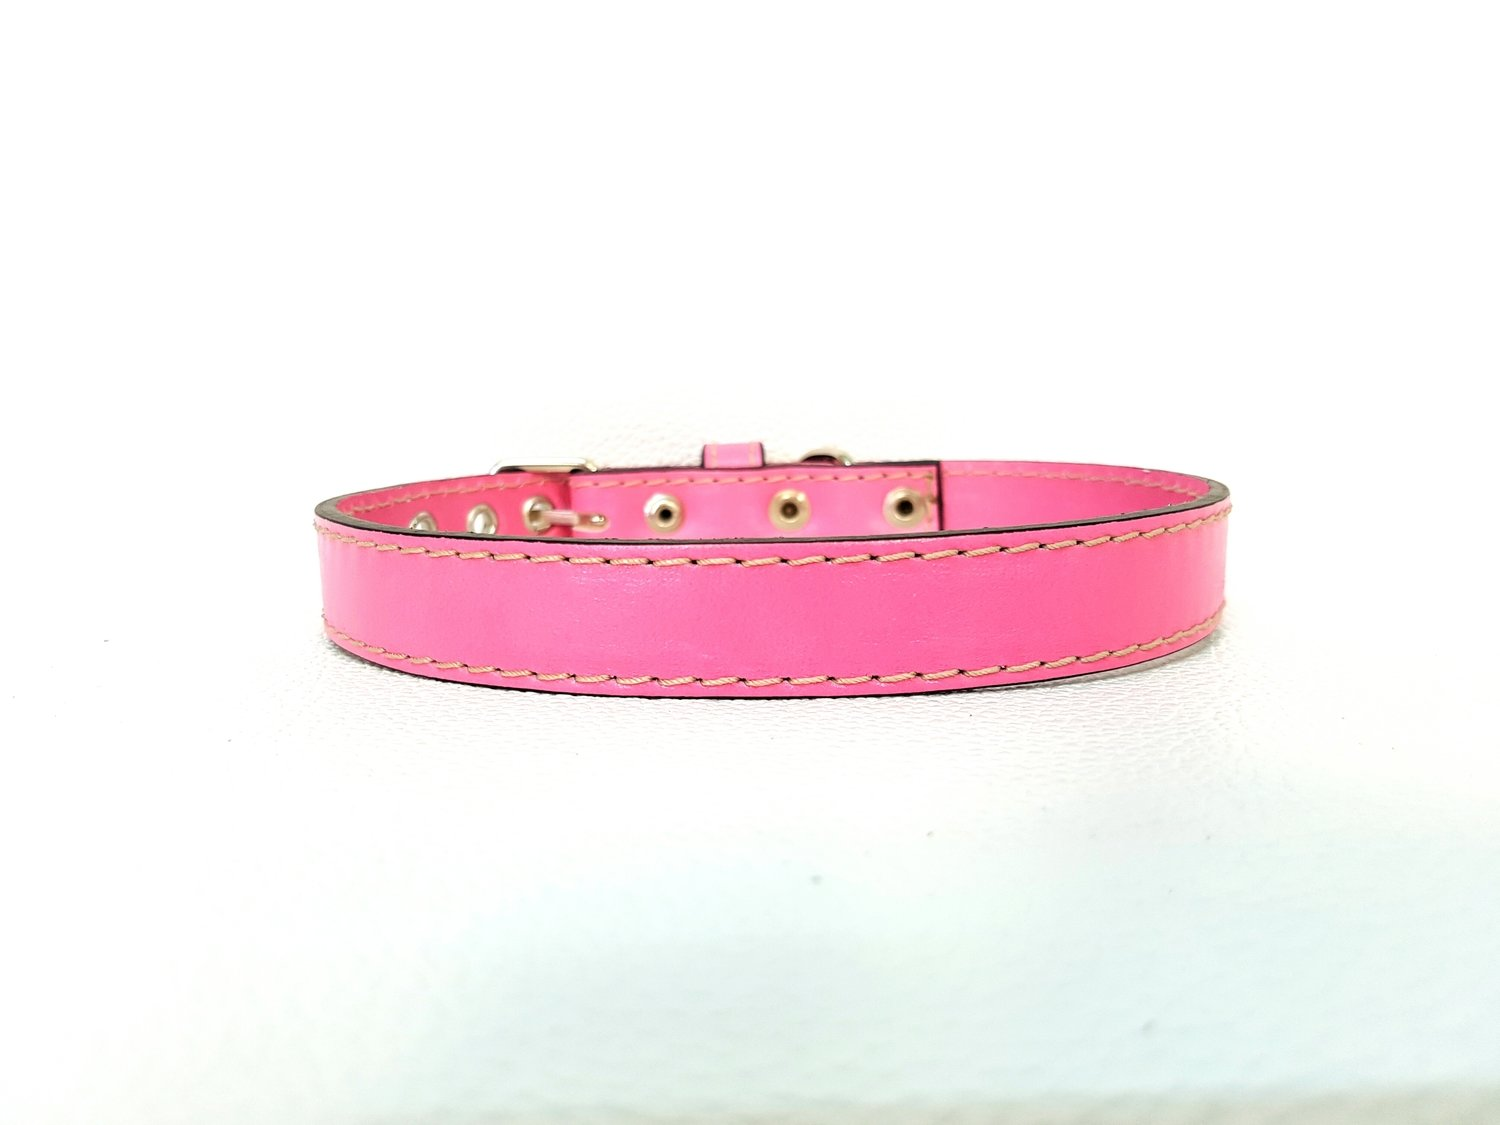 Rosa / Pink (2 cm / 0,79 inches)